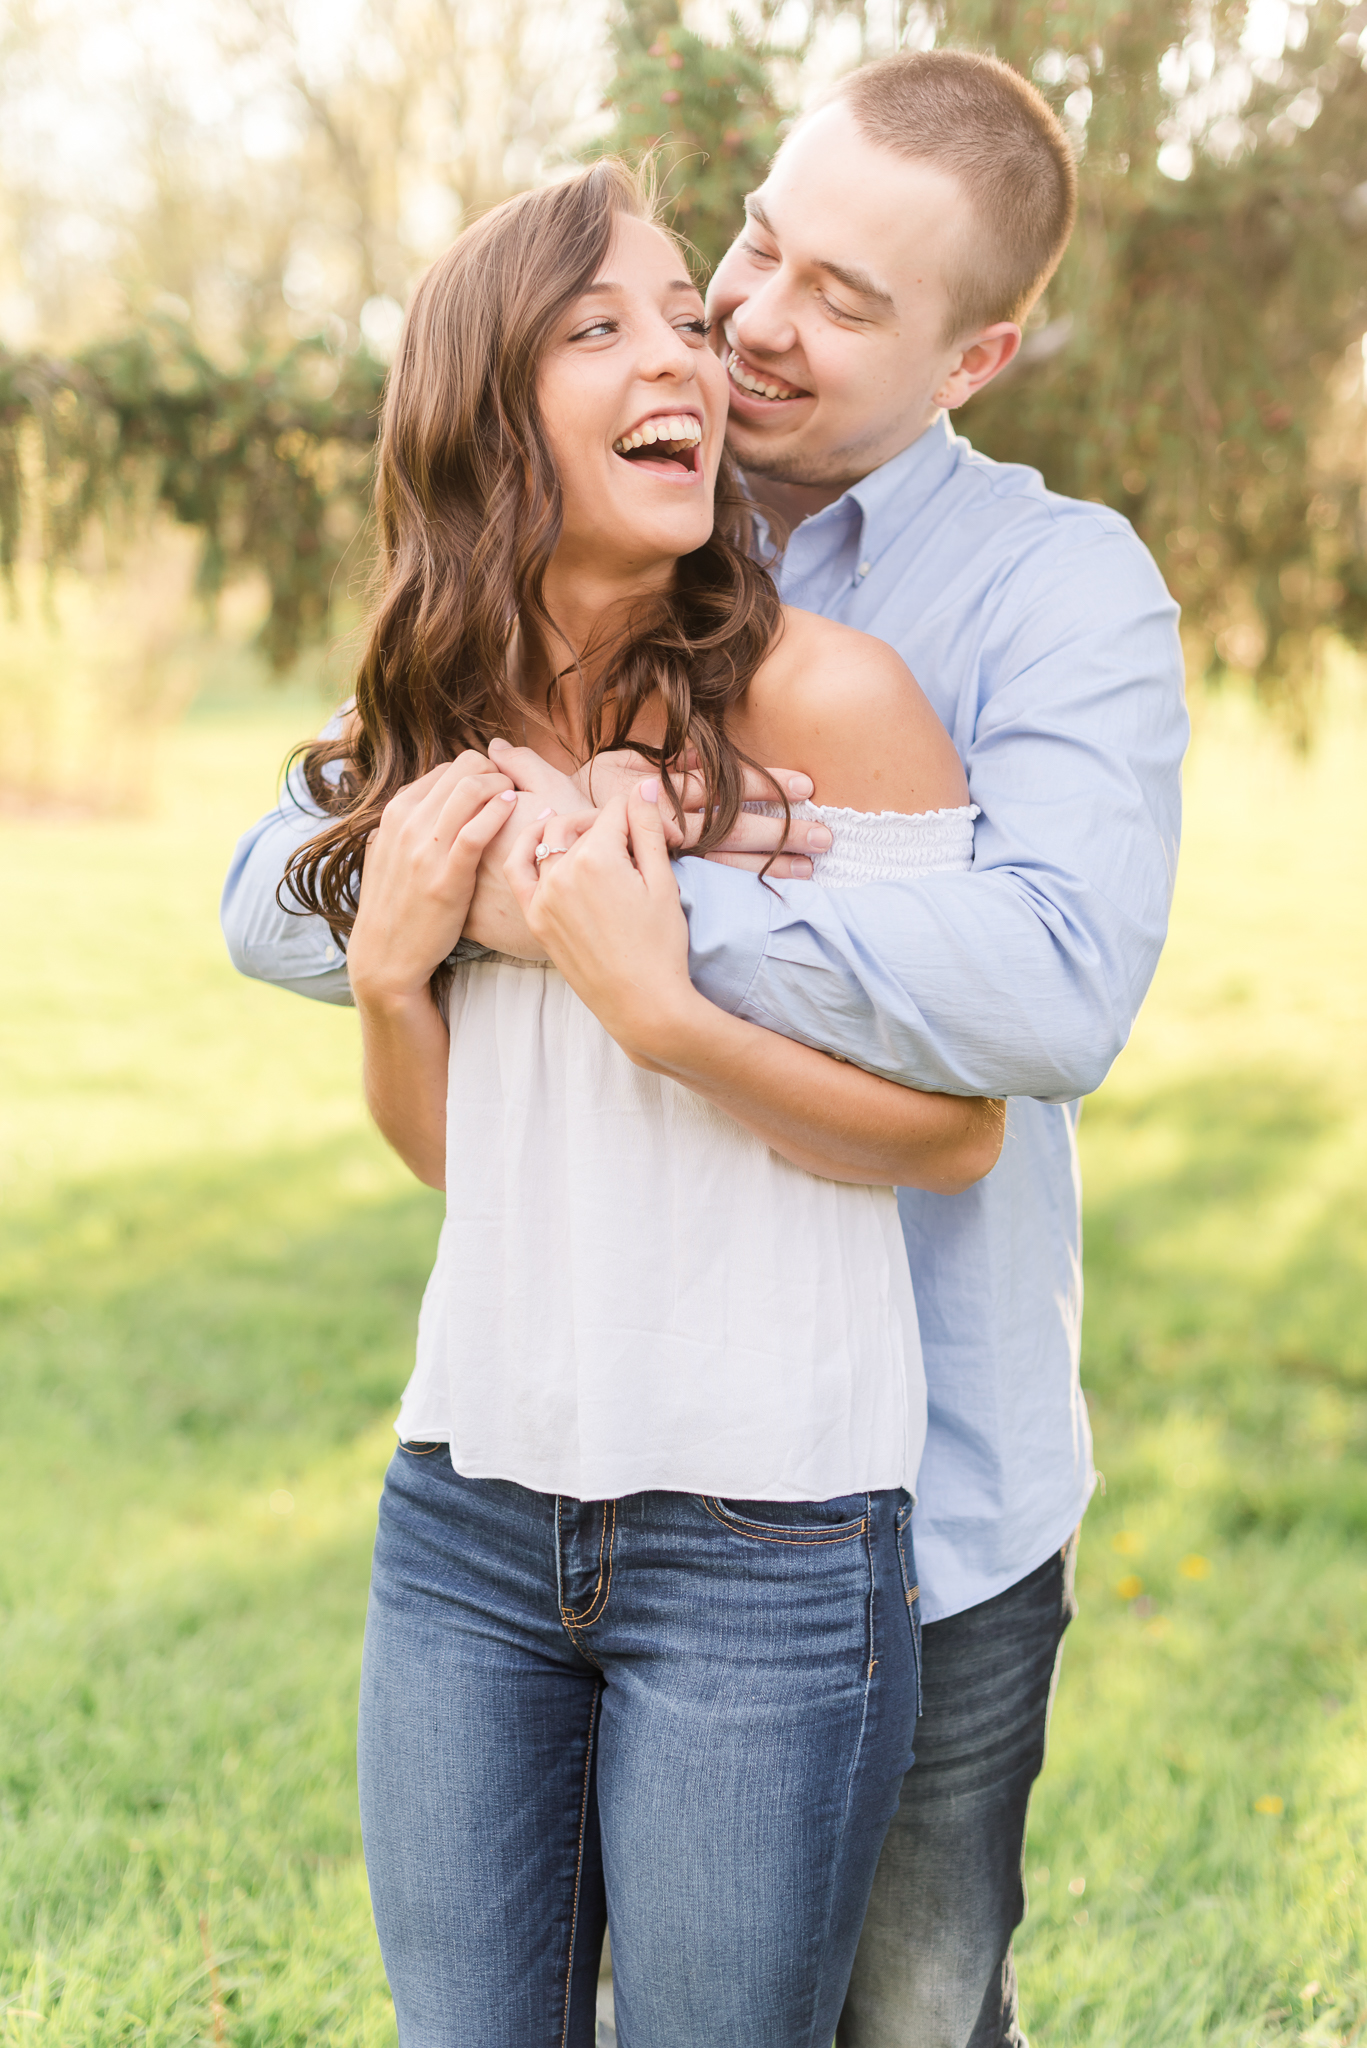 Holliday Park Engagement Session Indianapolis Wedding Photographer-6.jpg